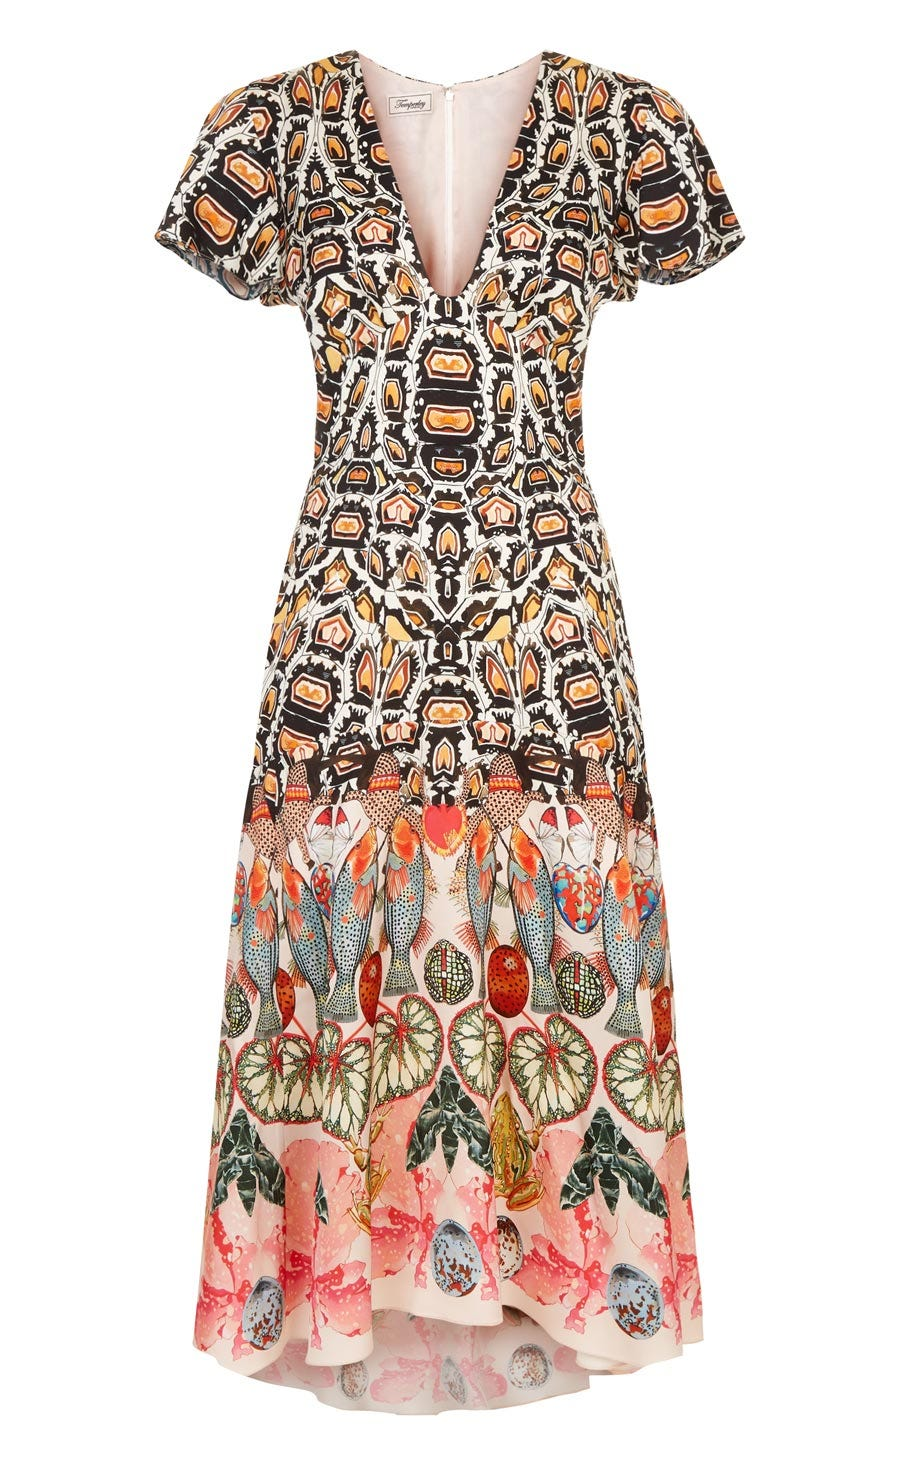 Spiral Printed Dress, Cinnamon Mix